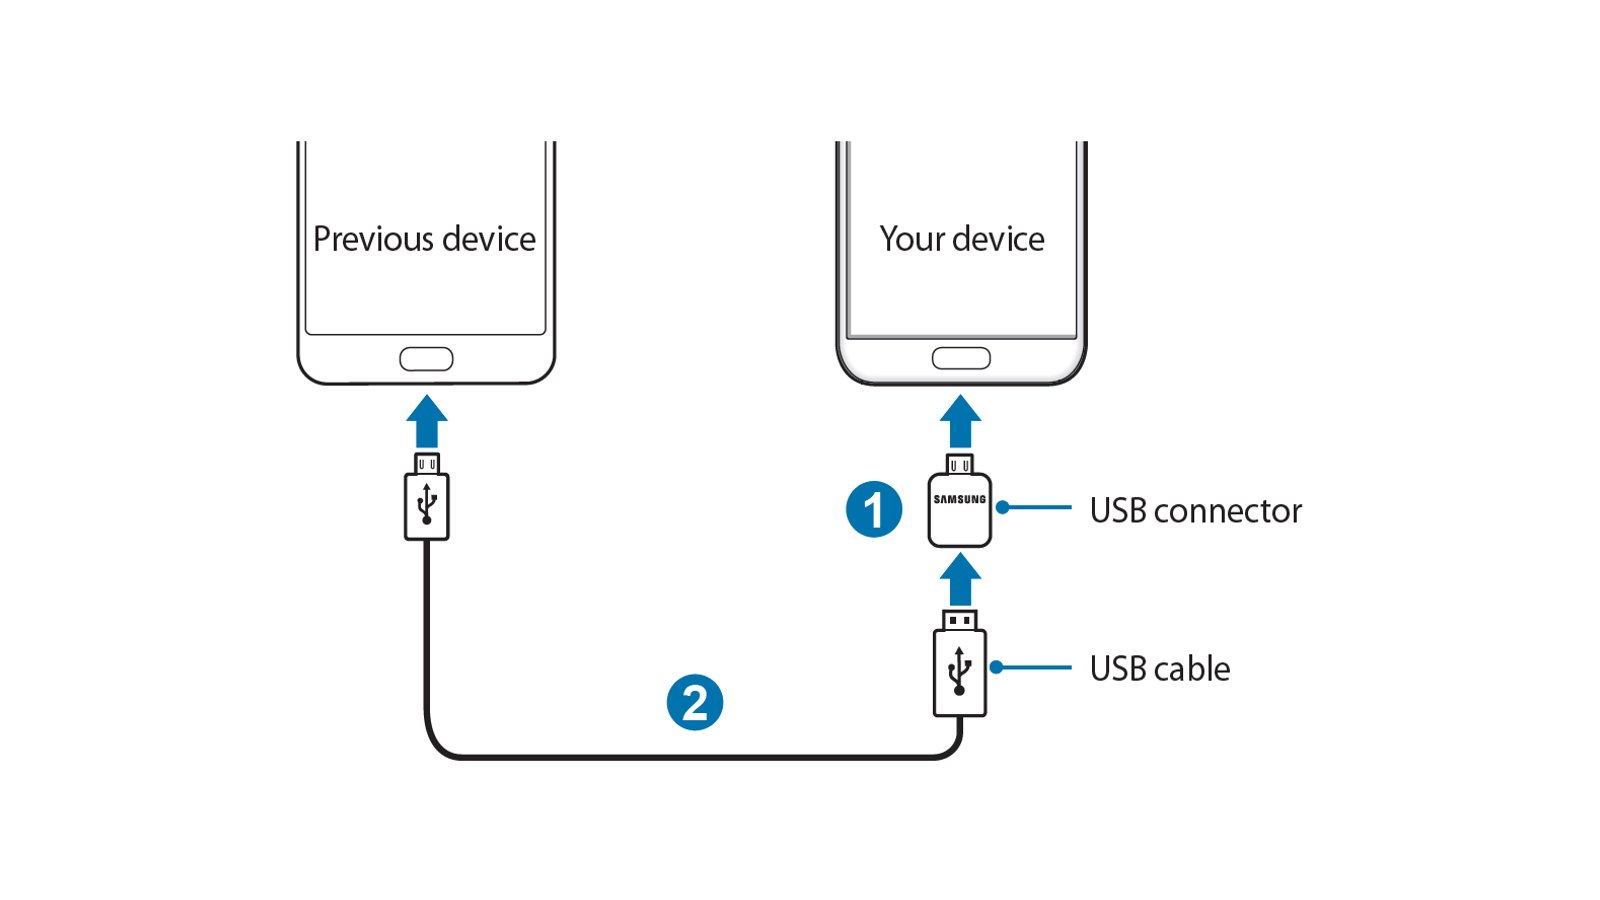 How To Use Samsung Smart Switch To Transfer Data From Your Previous